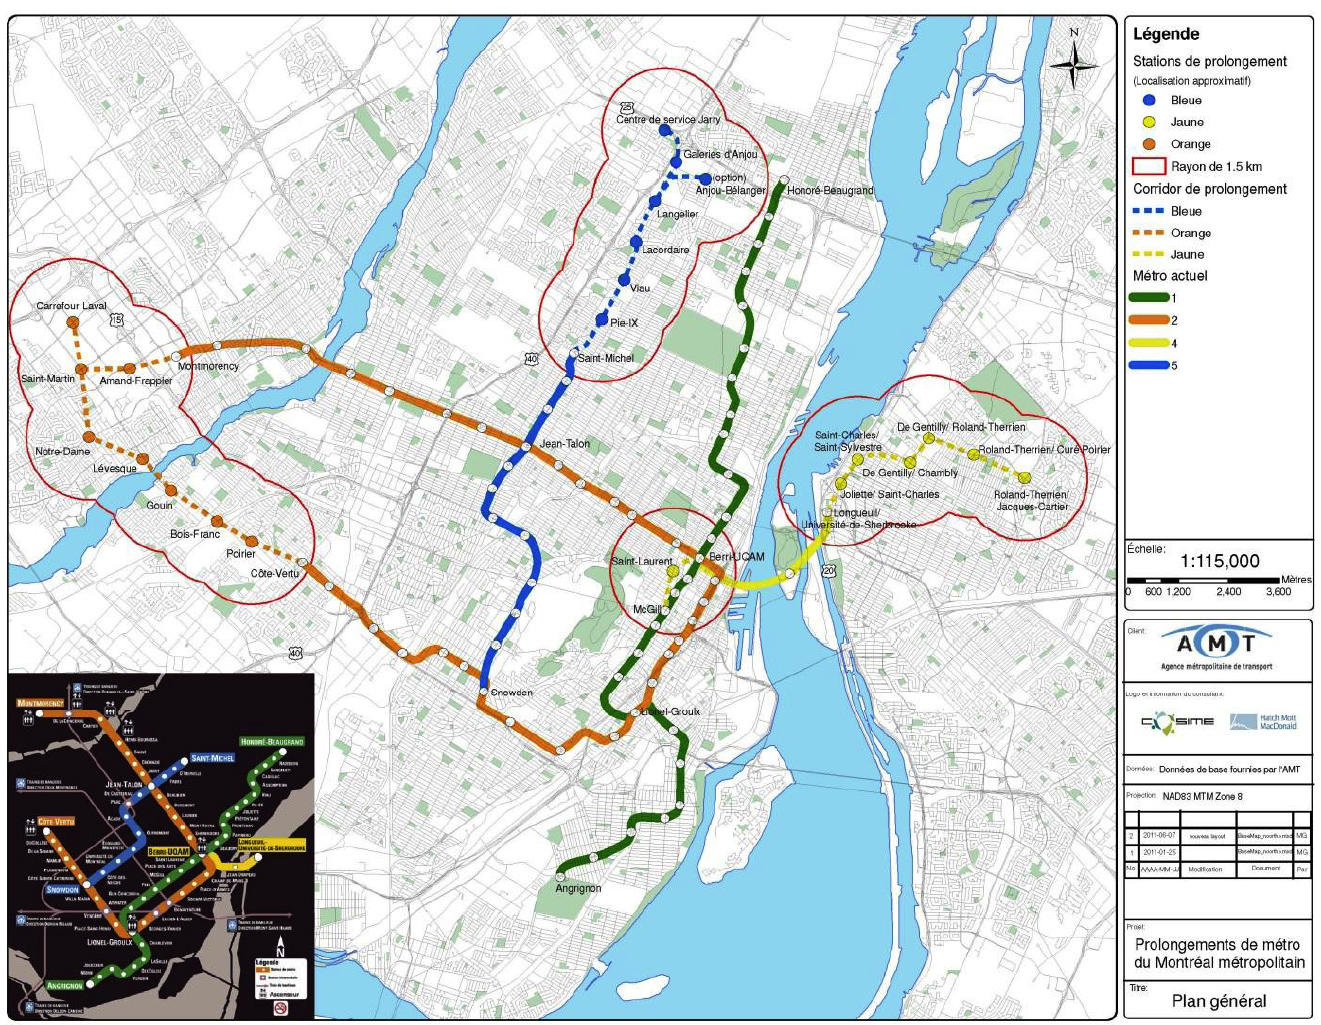 AMT Métro Extension Plan